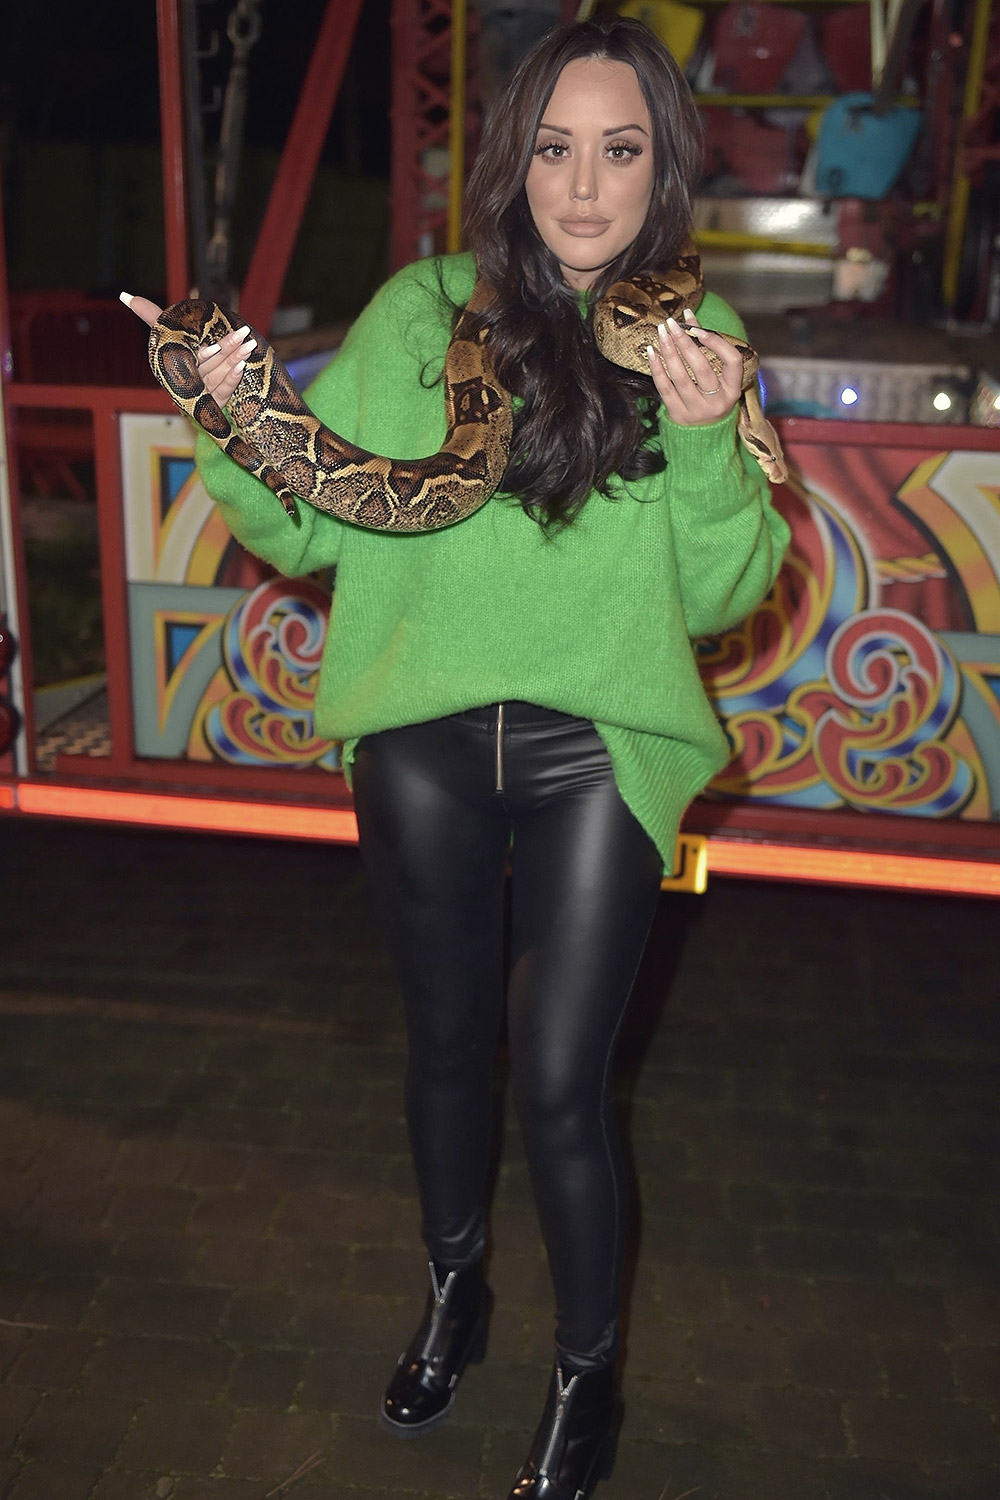 Charlotte Crosby at Birthday party at her mansion